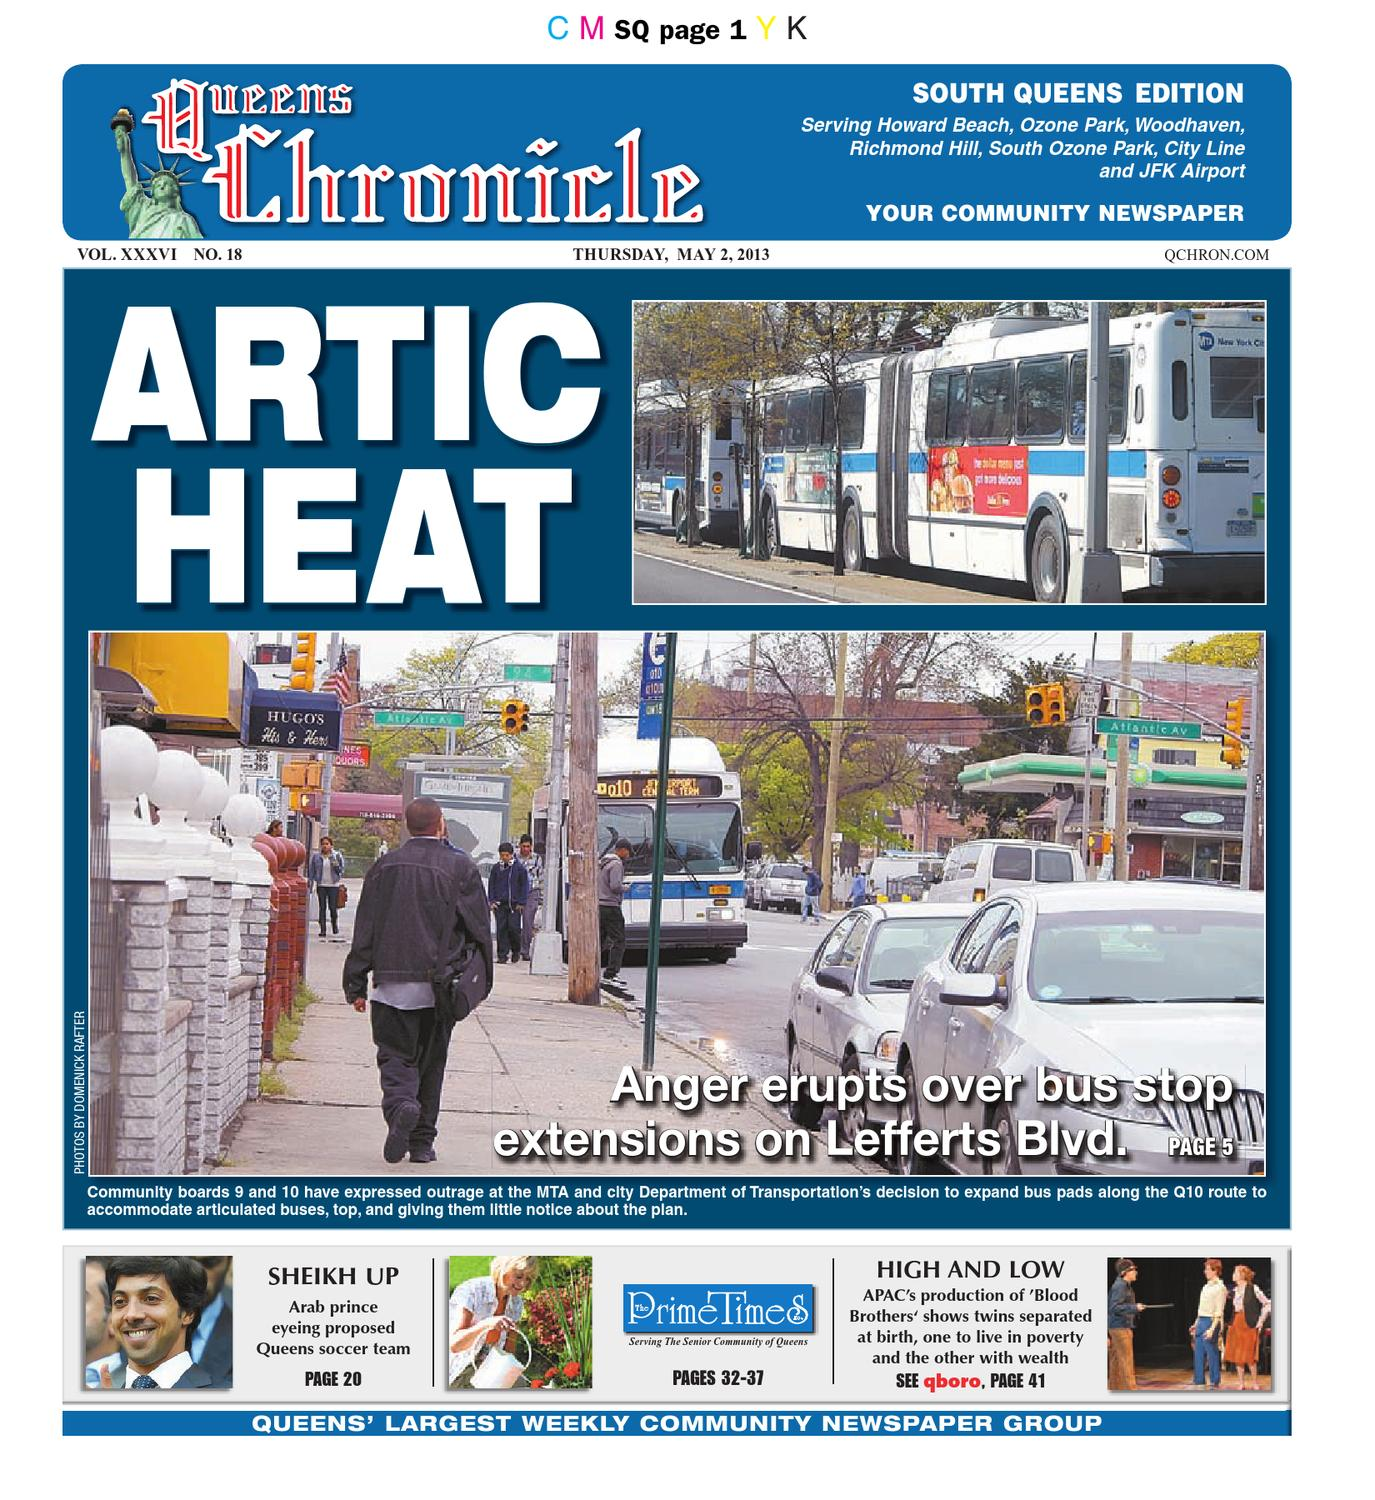 Queens Chronicle South Edition 05-02-13 by Queens Chronicle - issuu